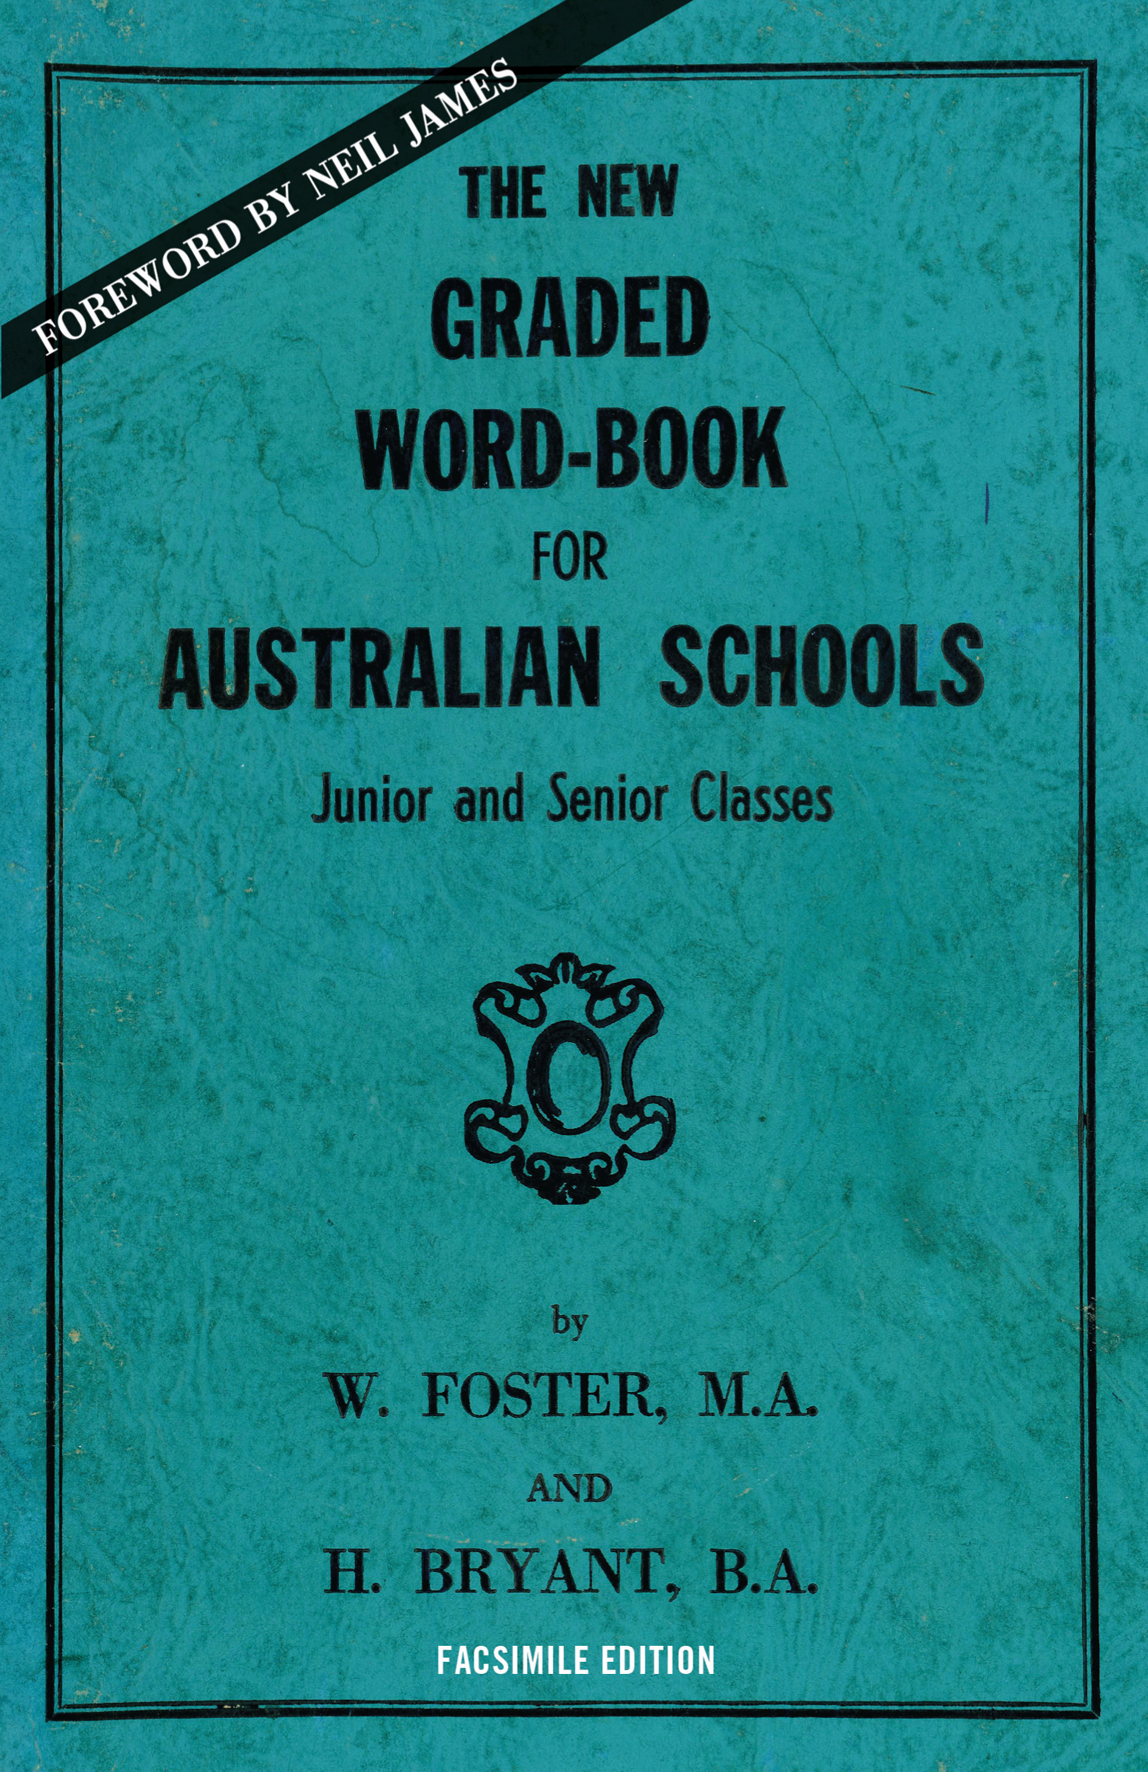 The New Graded Word-Book for Australian Schools | Book